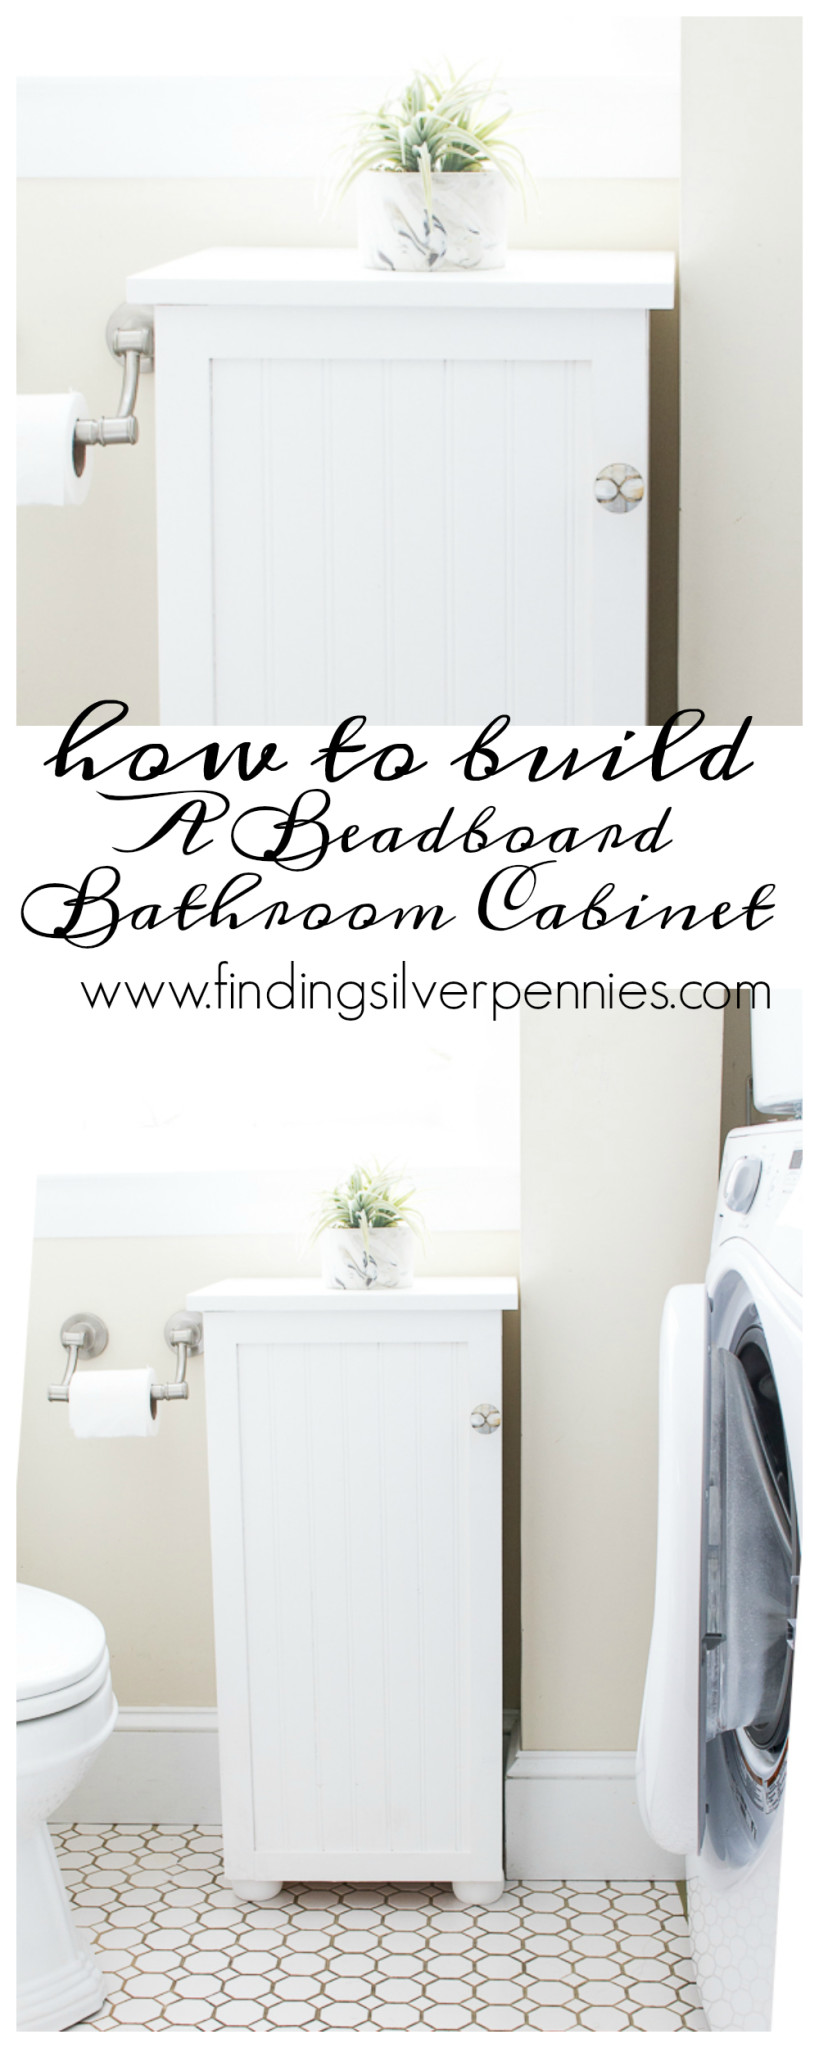 How to Build a Beadboard Bathroom Cabinet by Finding Silver Pennies.